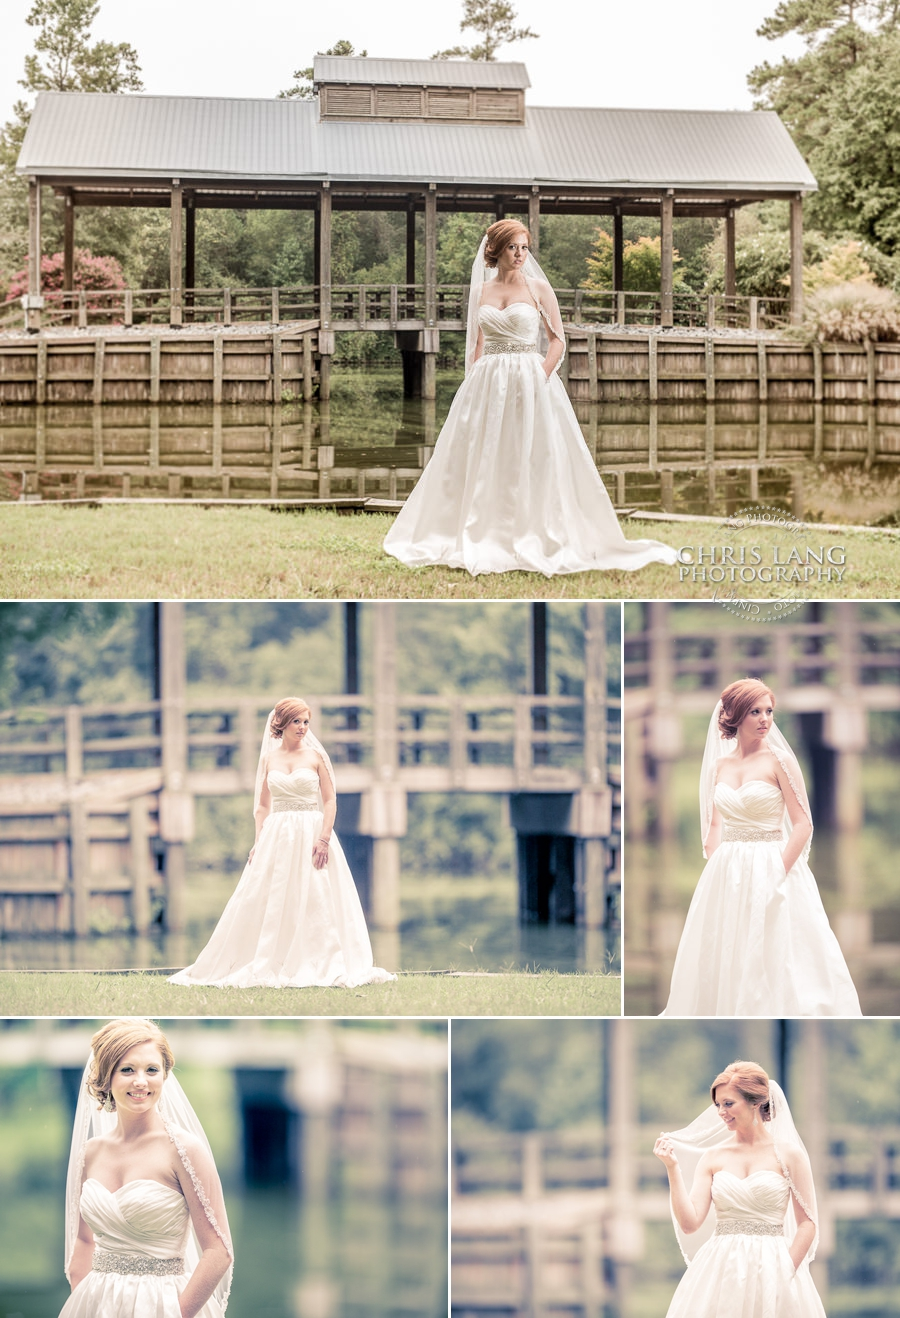 Bridal session at River Landing Wallace NC - Wedding Dress - Bridal Photos - Wedding Ideas